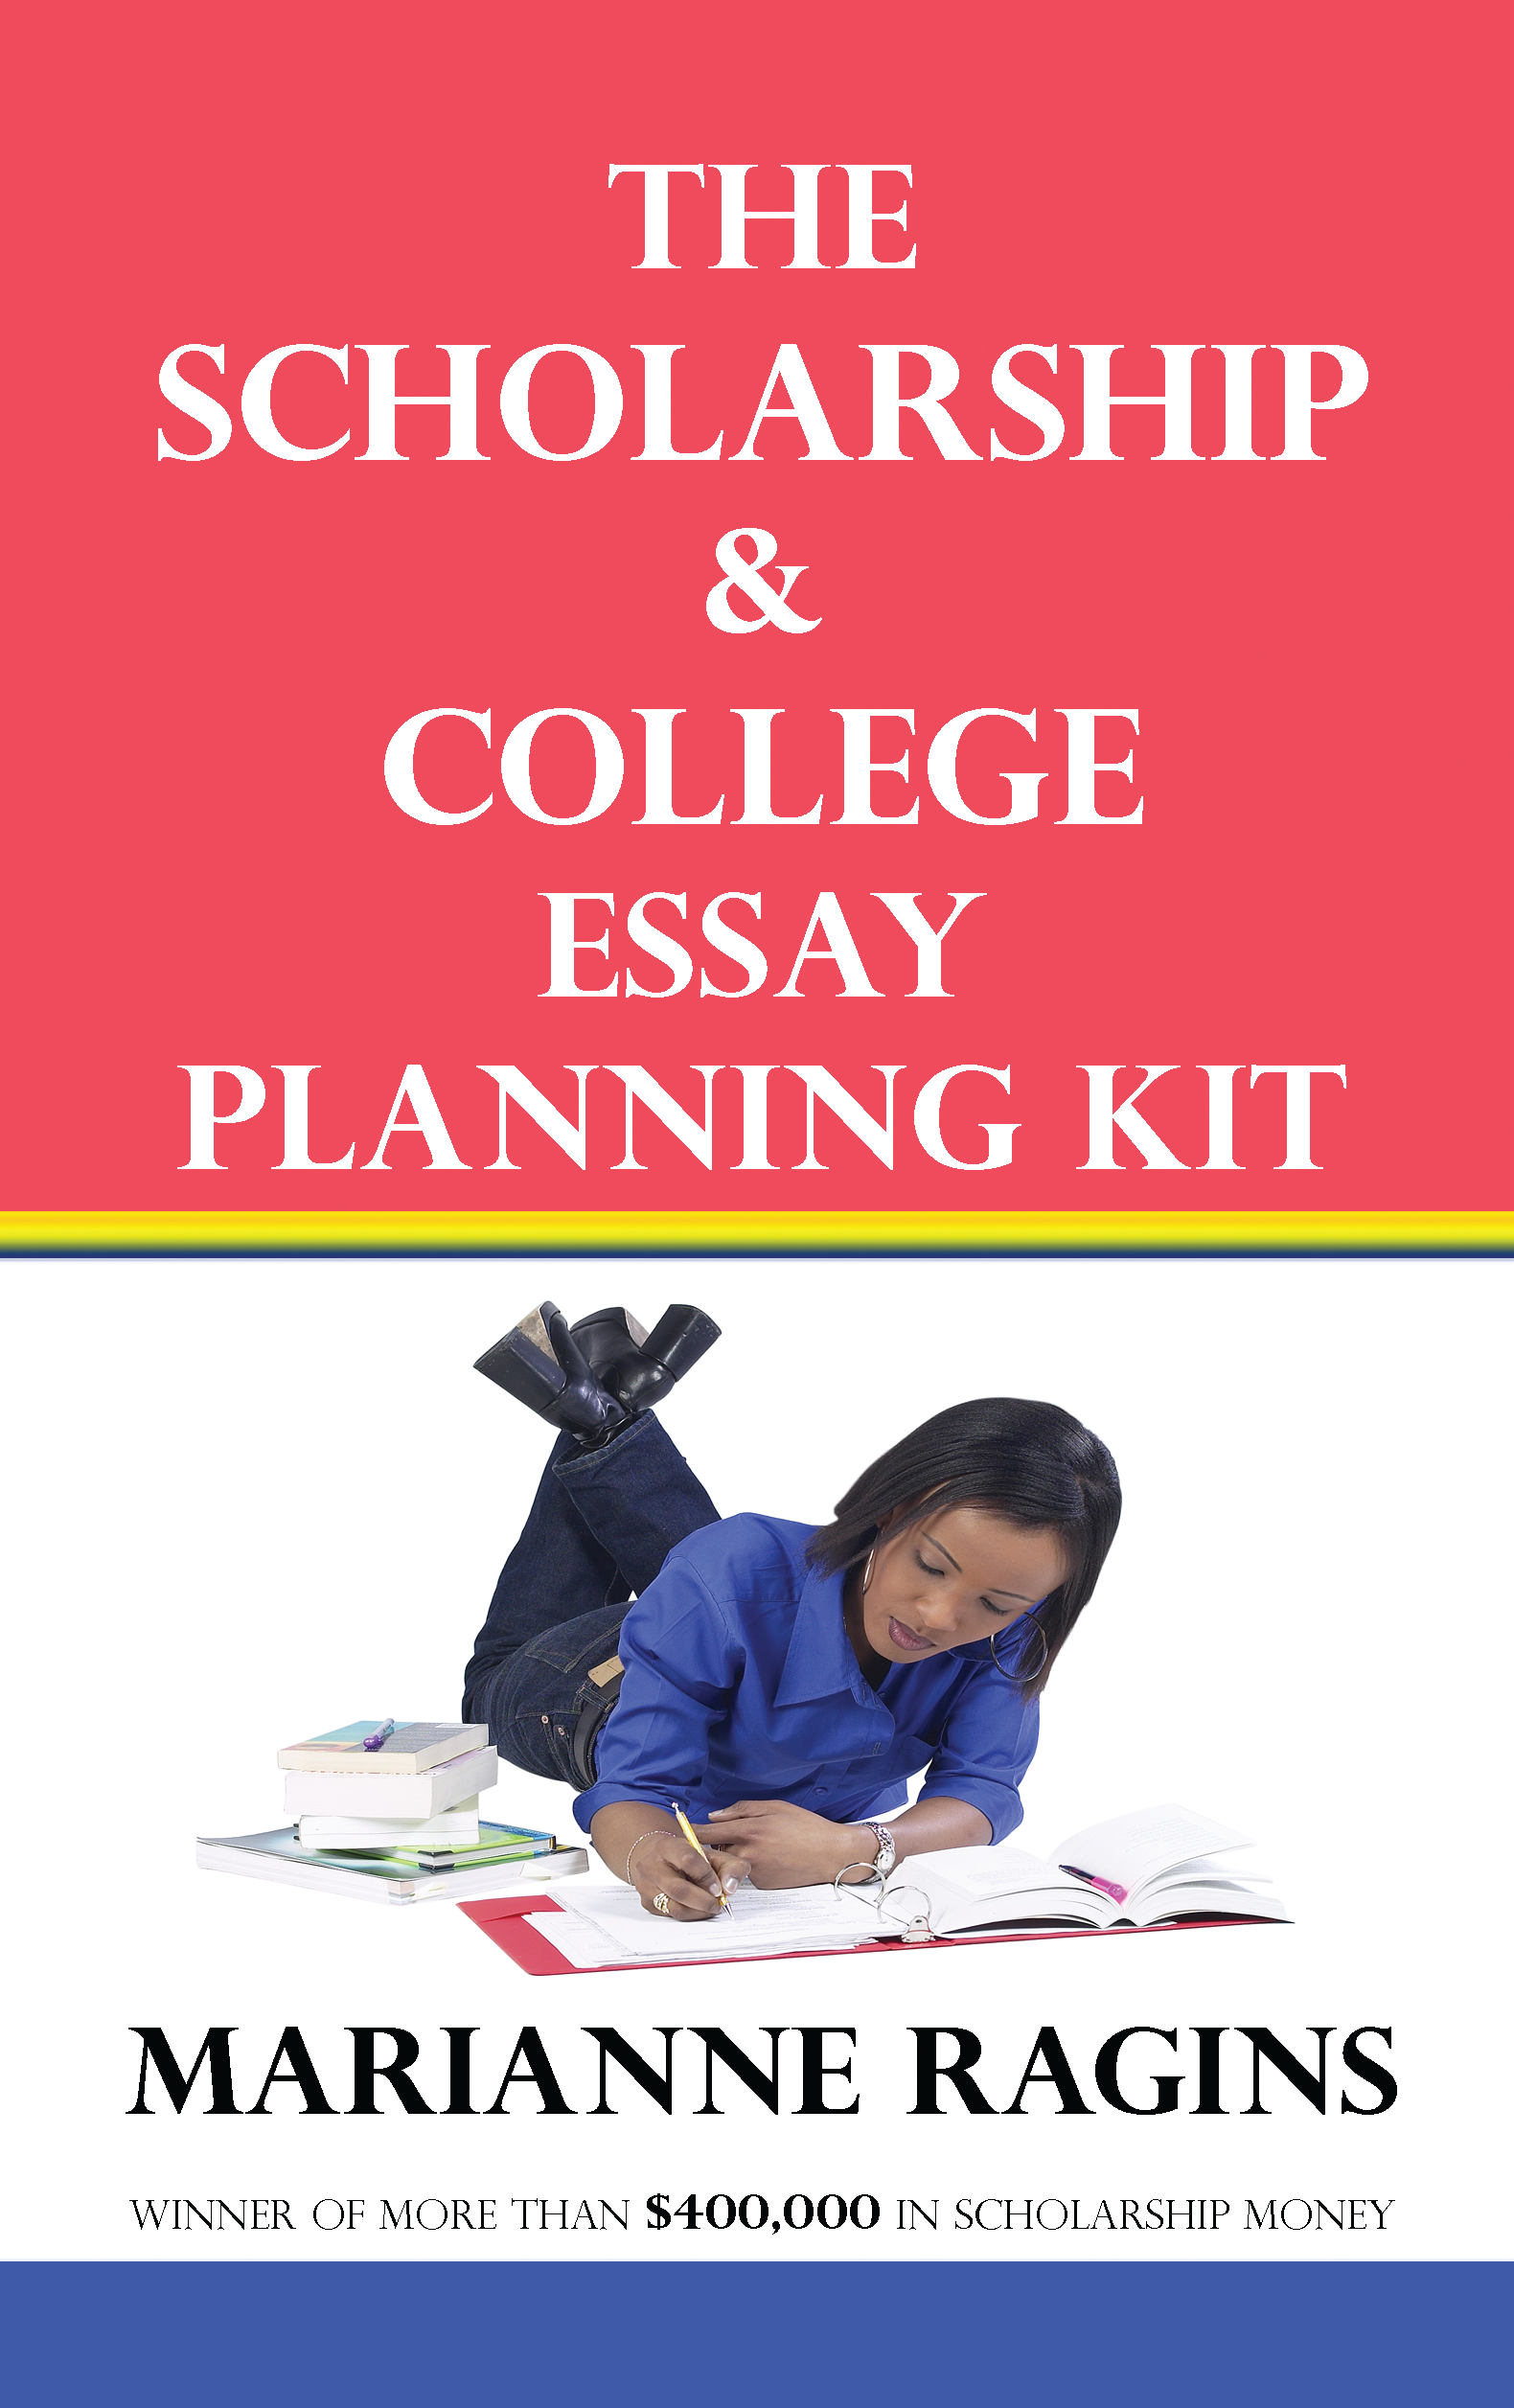 The Scholarship & College Essay Planning Kit - Get Help Writing College Essays and Scholarship Essays